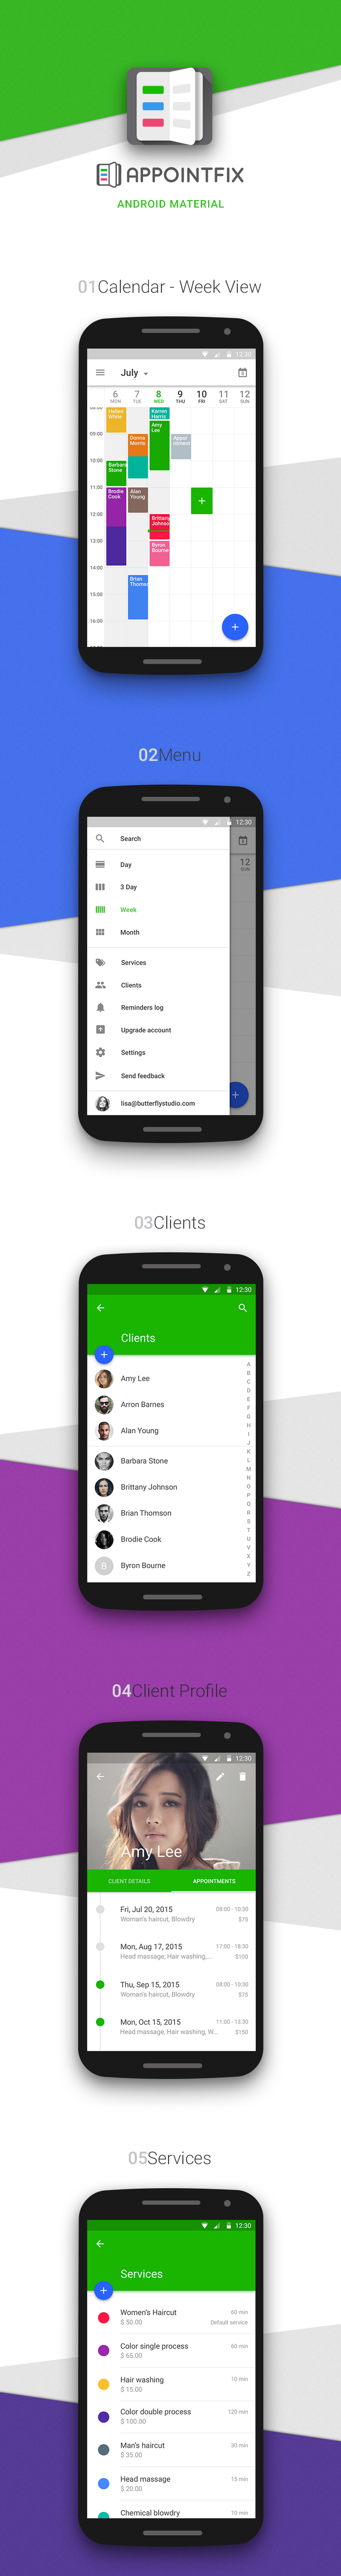 Appointfix Android Material Design Example